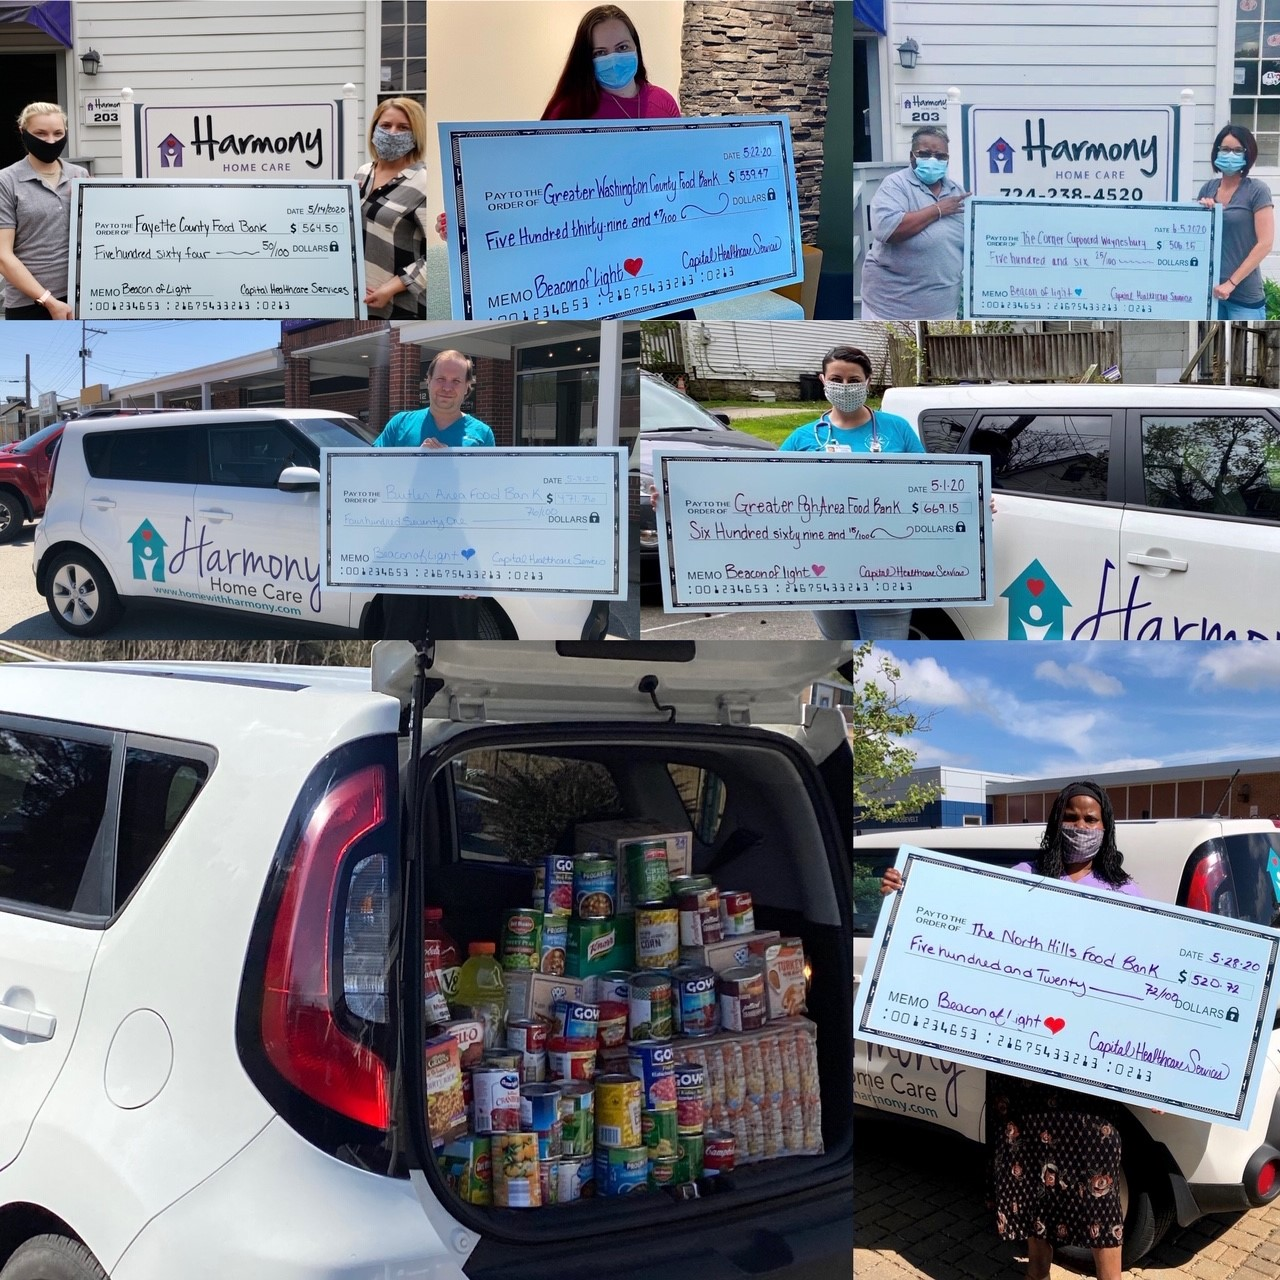 Bringing Harmony to Local Food Banks through Beacon of Light Campaign